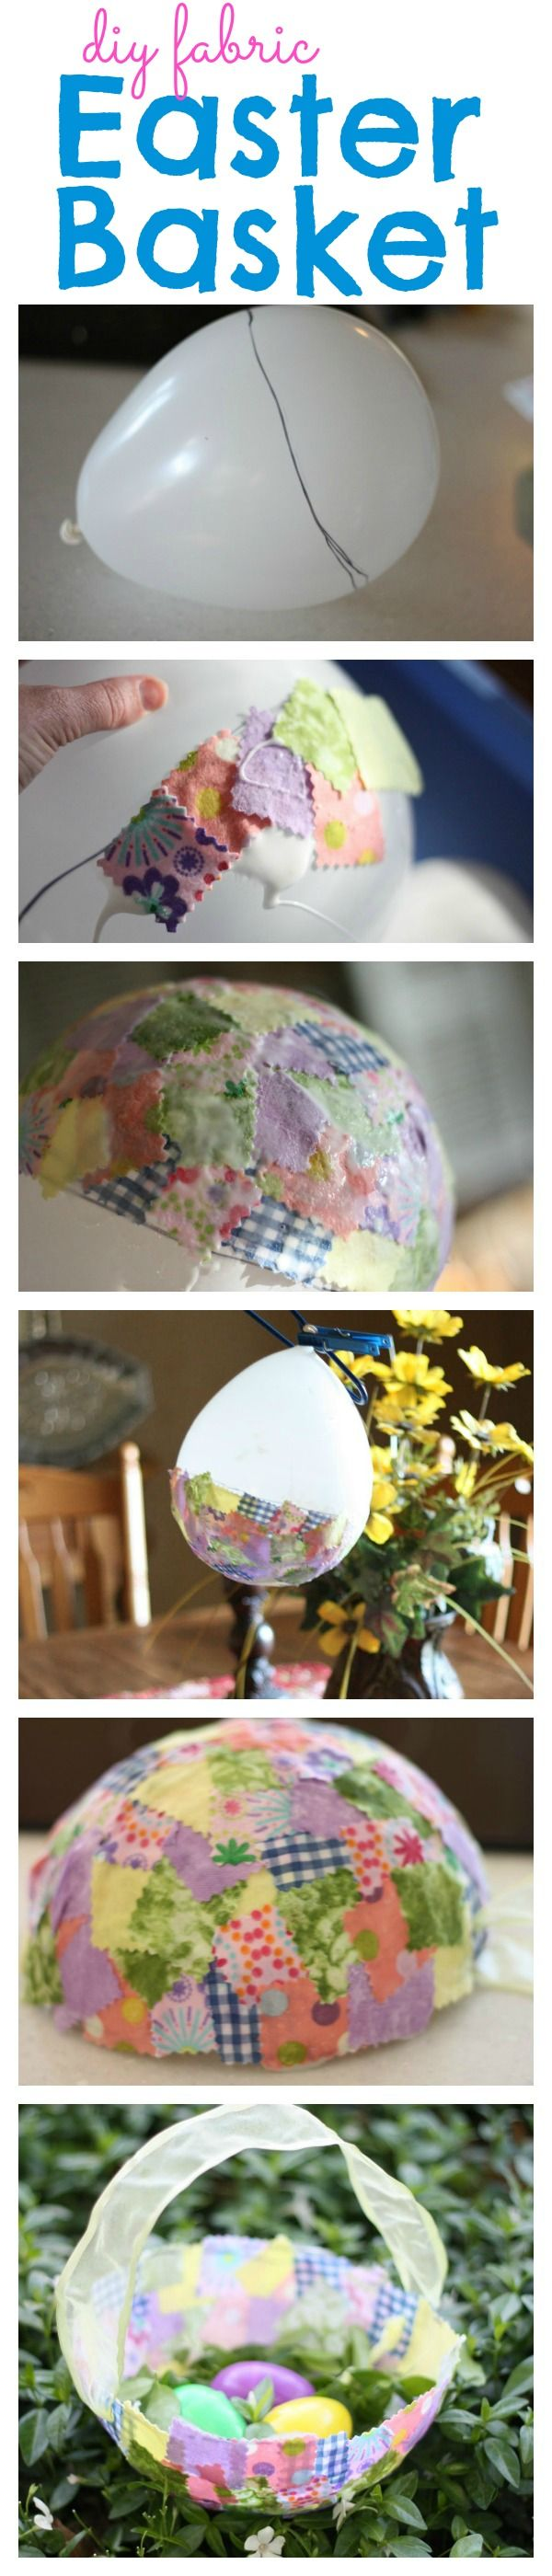 Fabric Easter Basket made wiuth a balloon!